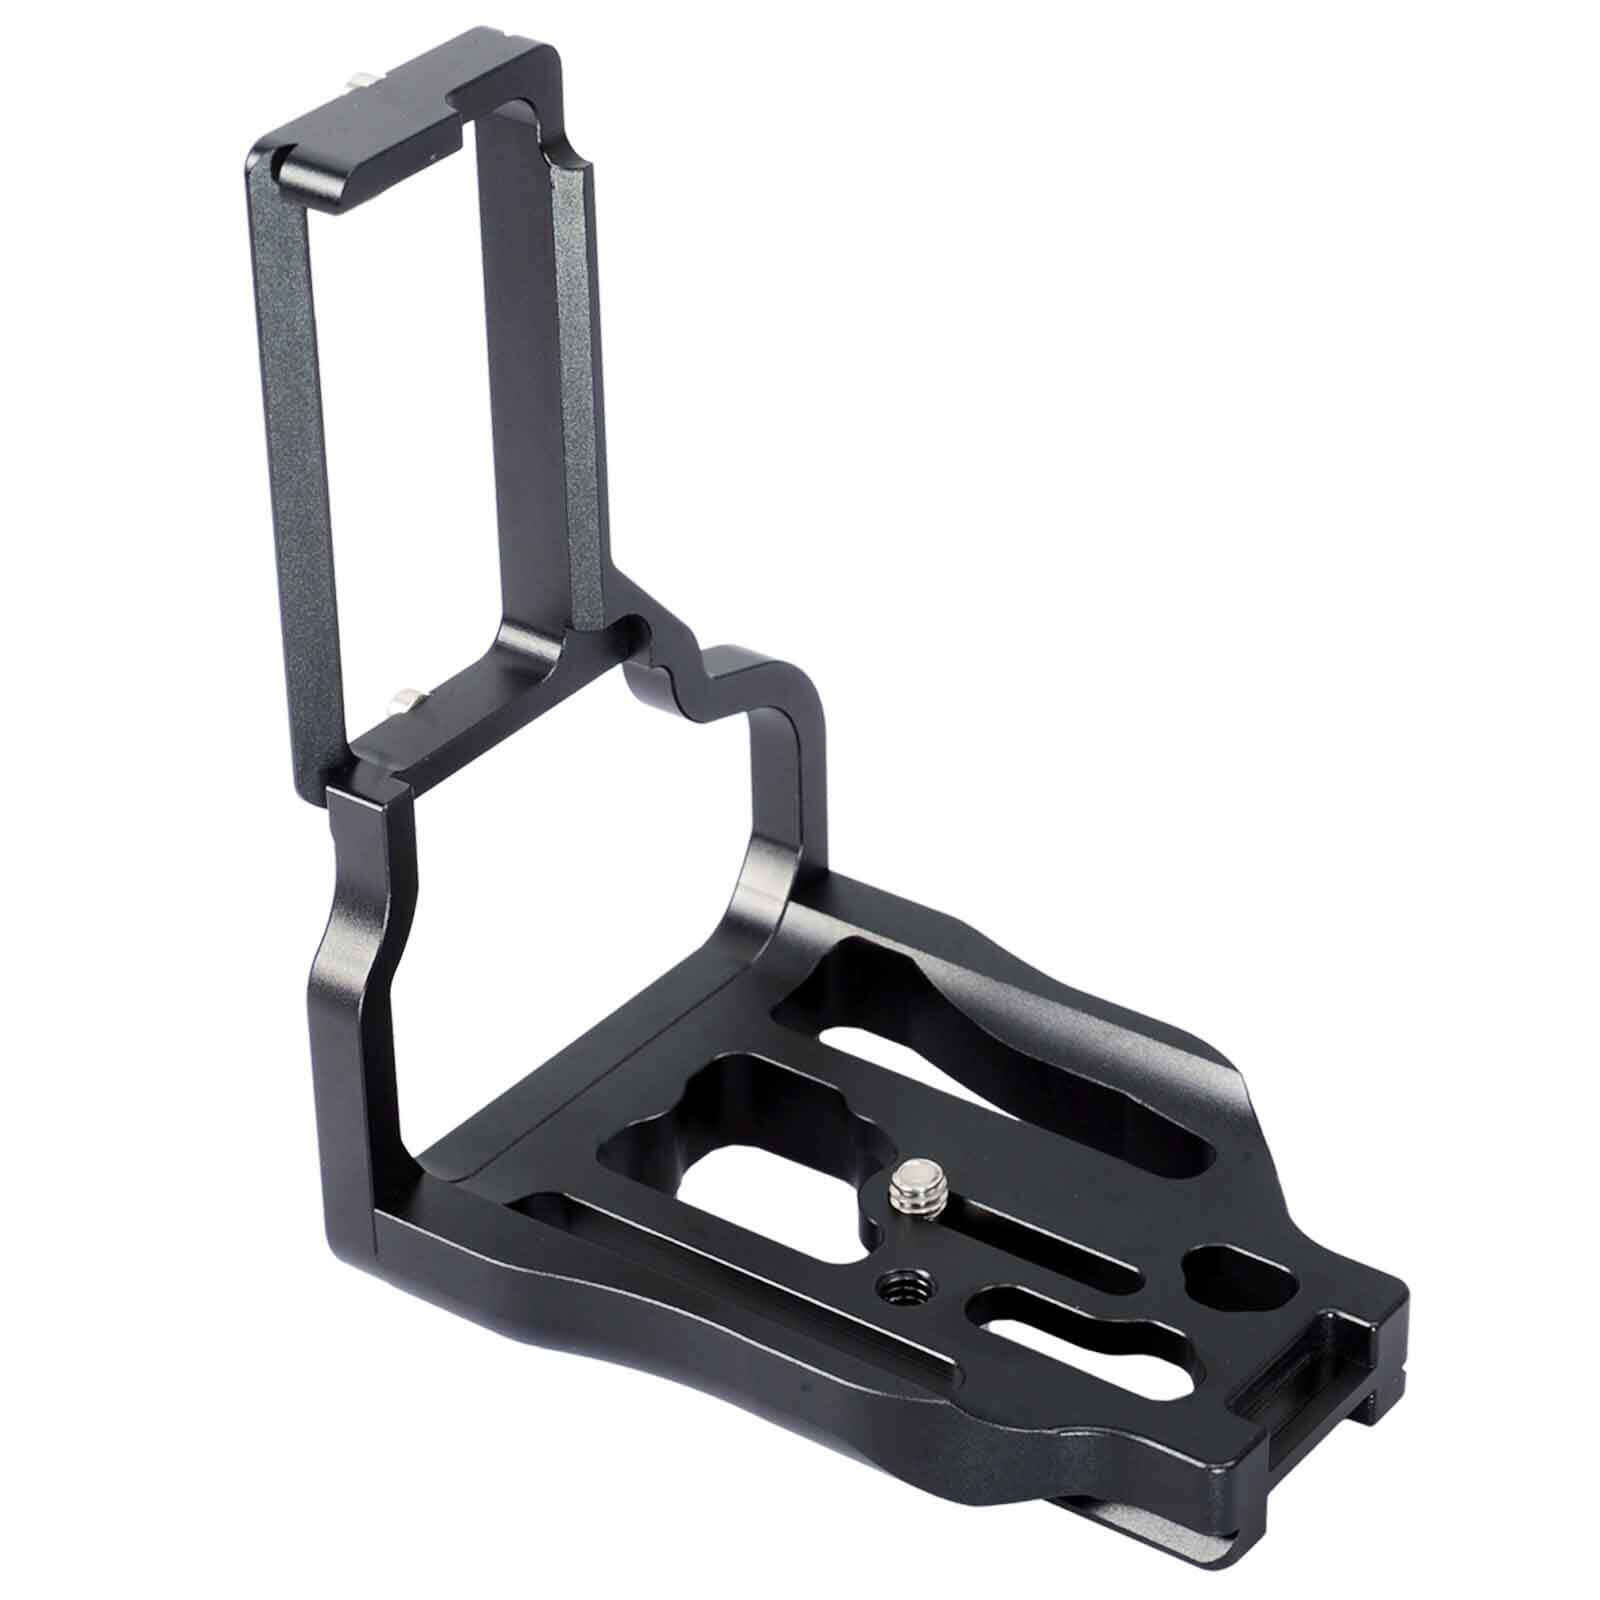 Separable Vertical Quick Release Plate Camera Bracket for NikonD810 Battery Grip